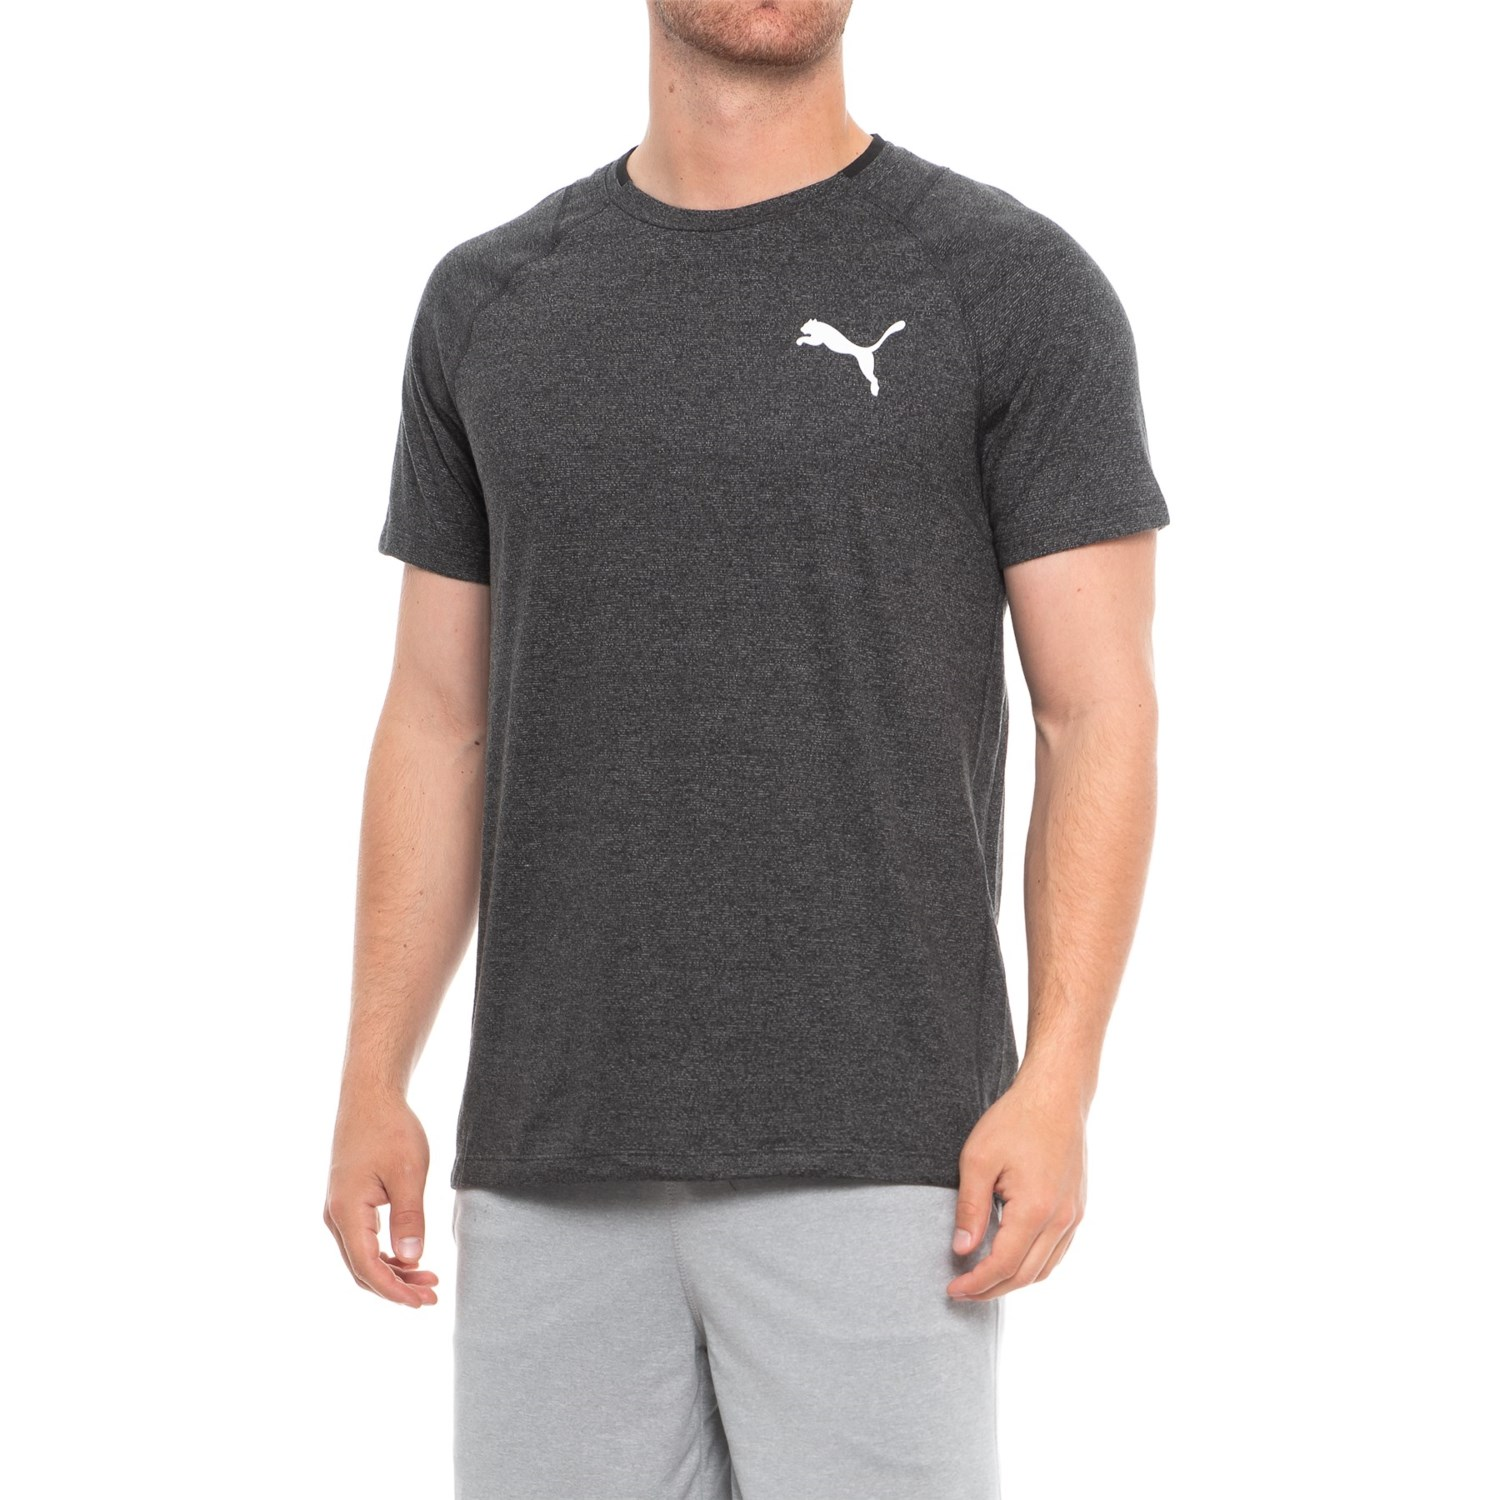 443069914e2f5 Puma Finishline T-Shirt - Short Sleeve (For Men) in Dark Gray Heather ...